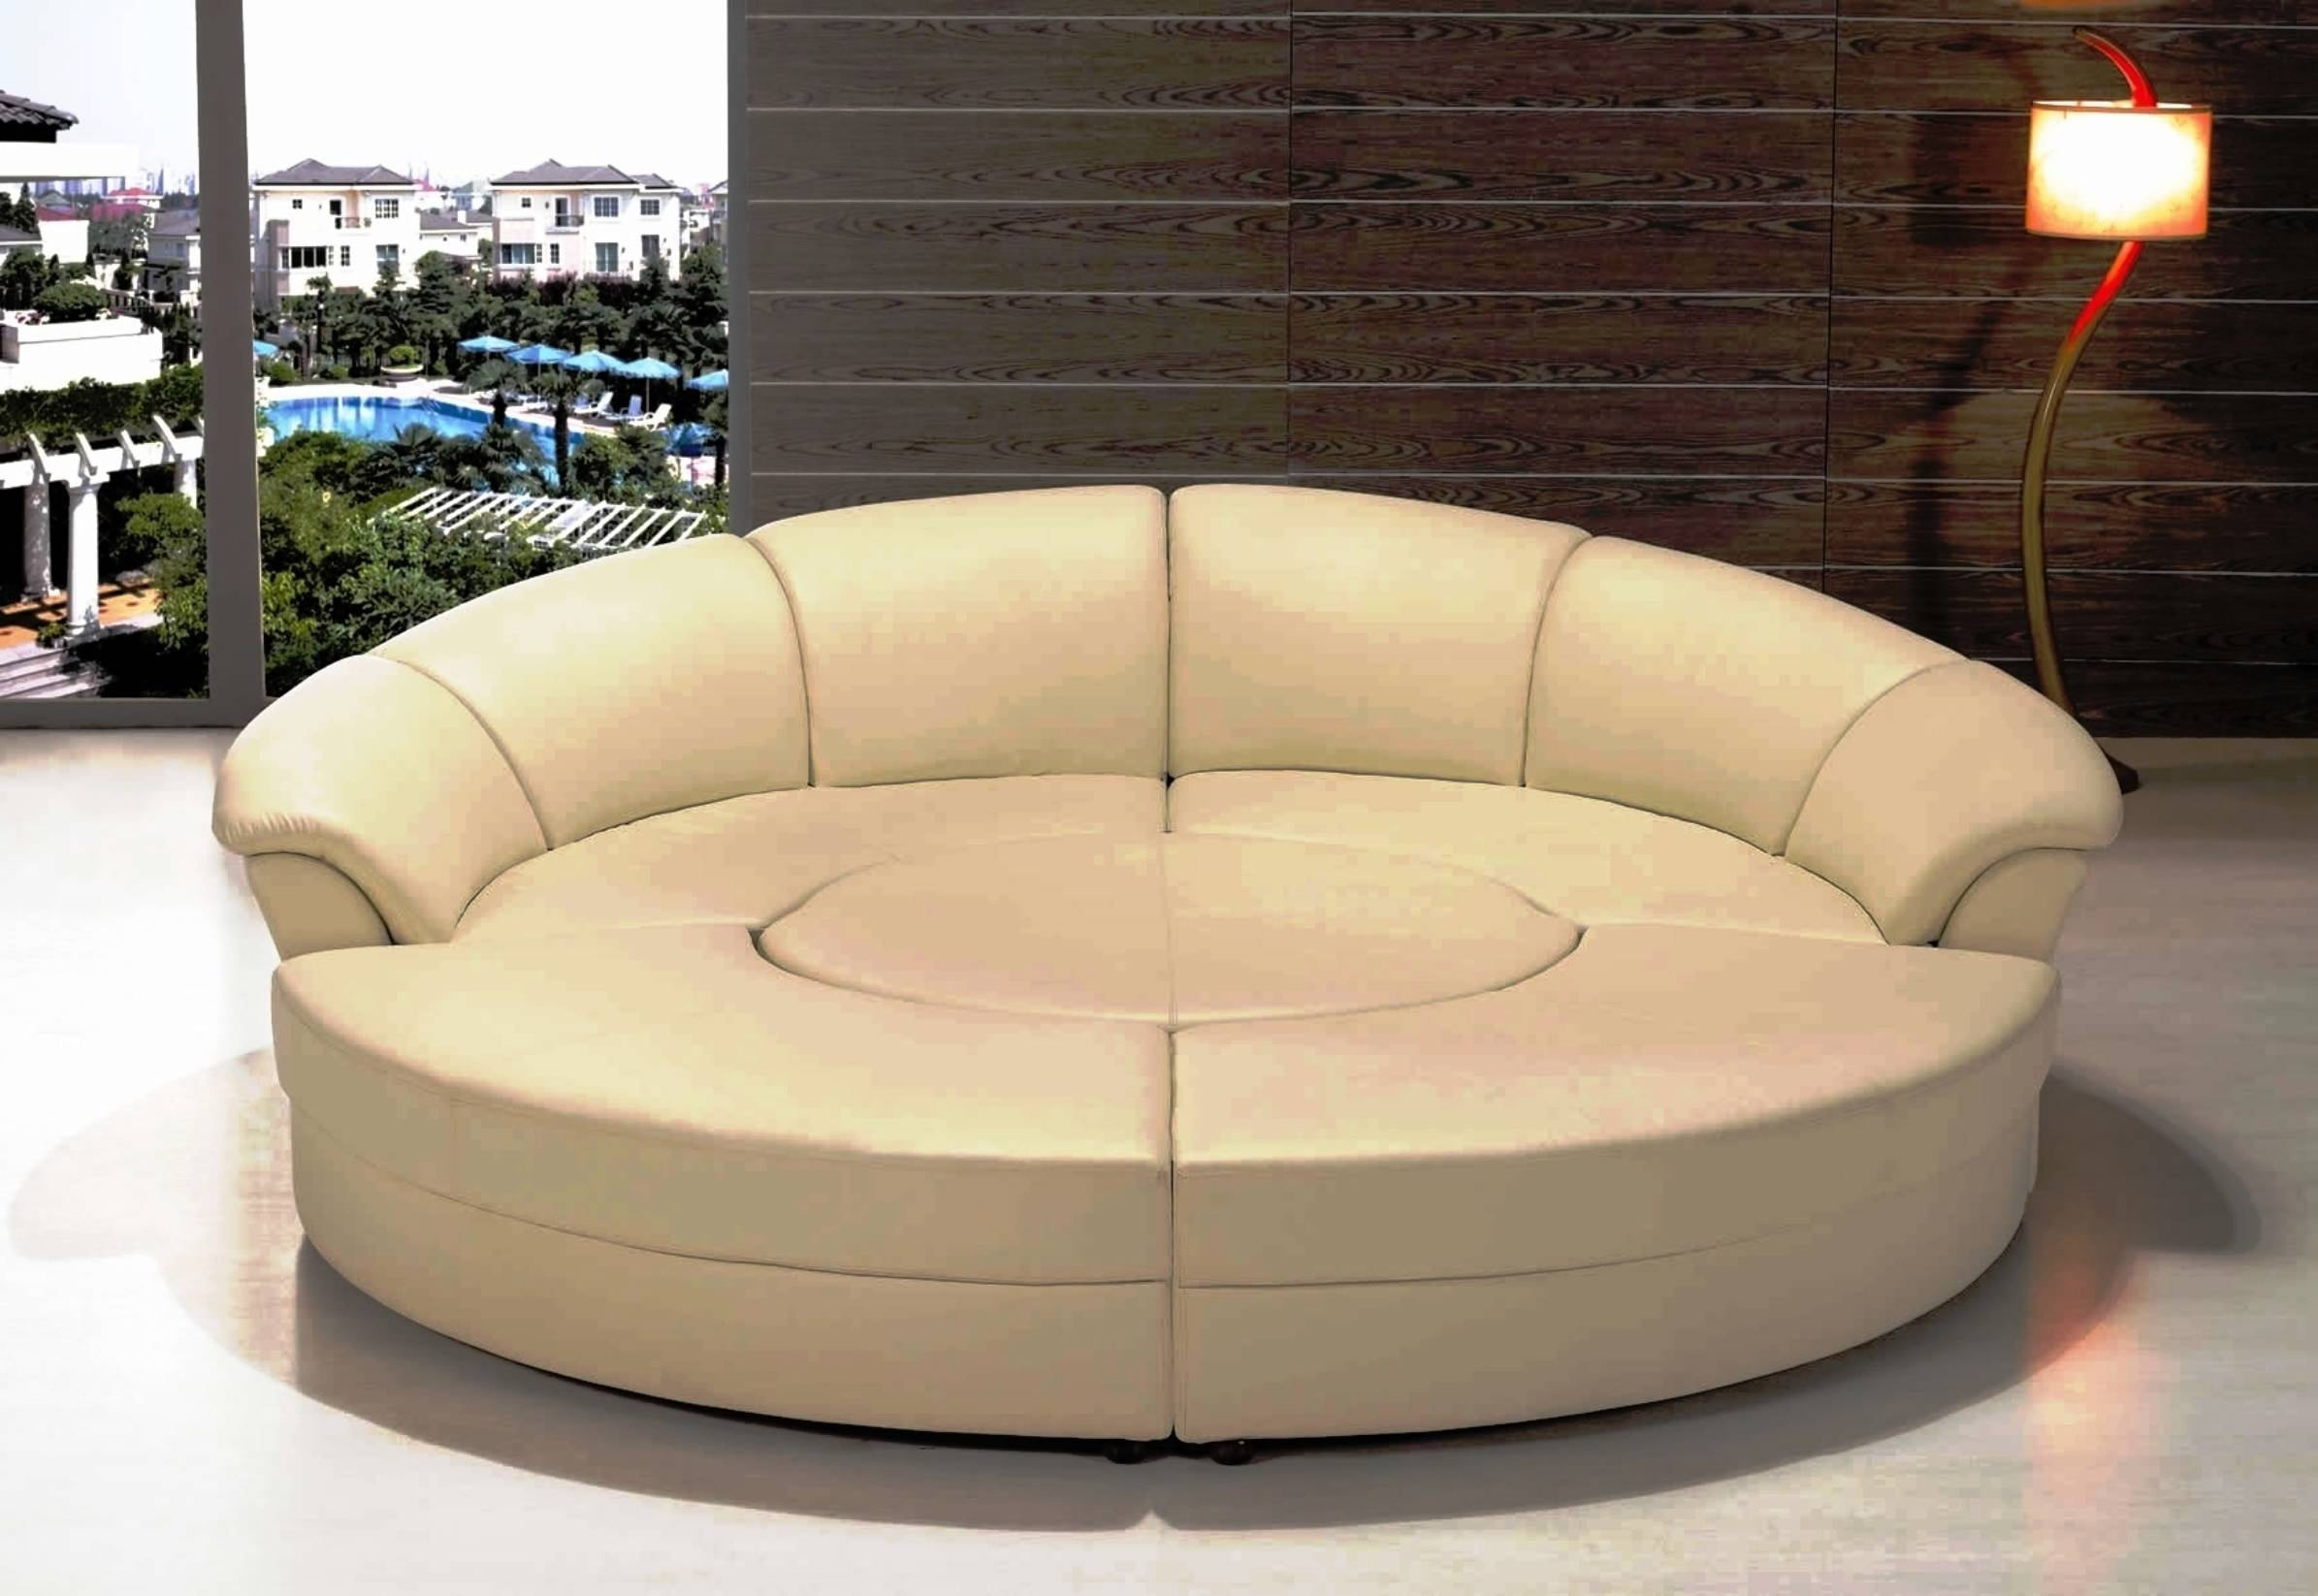 25 s Round Sectional Sofa Bed